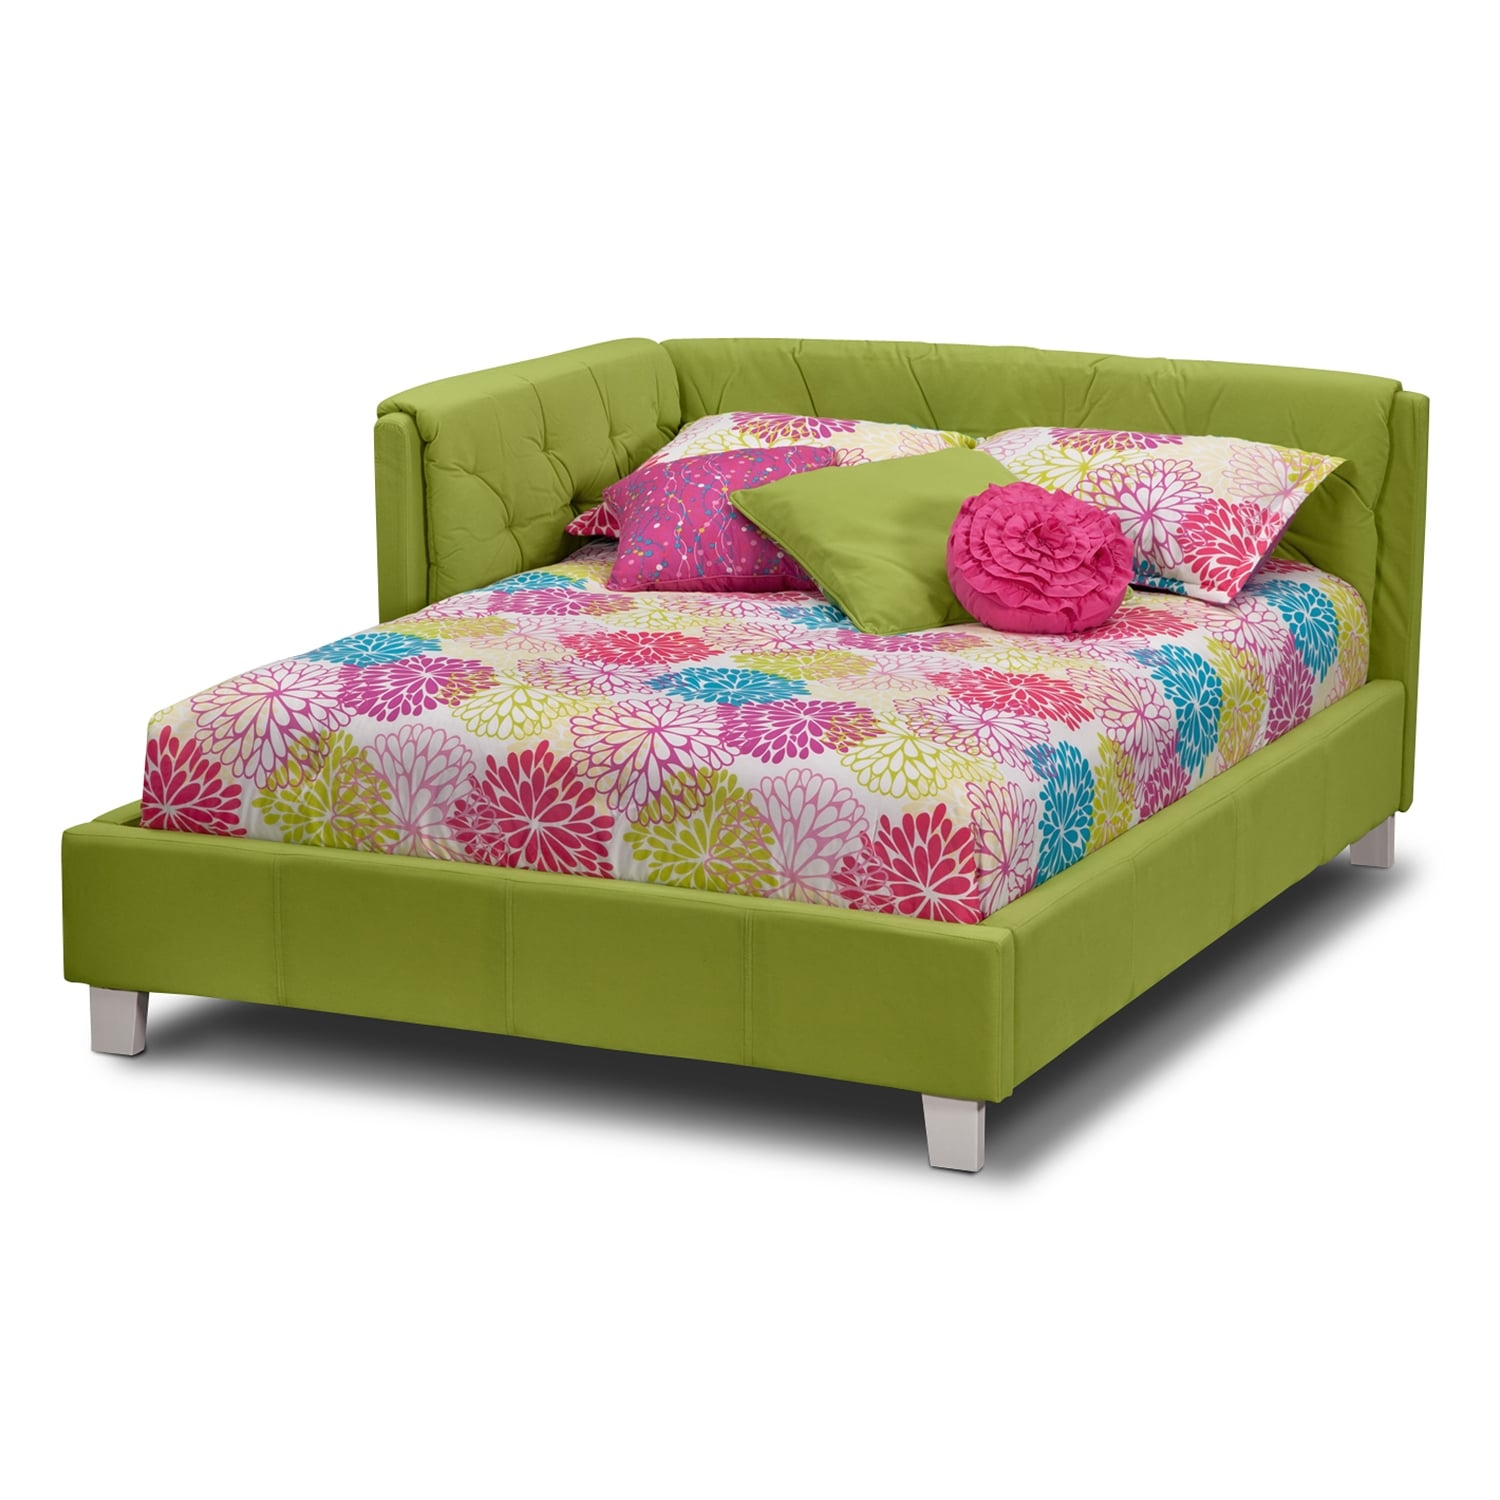 Jordan Full Corner Bed Green Value City Furniture